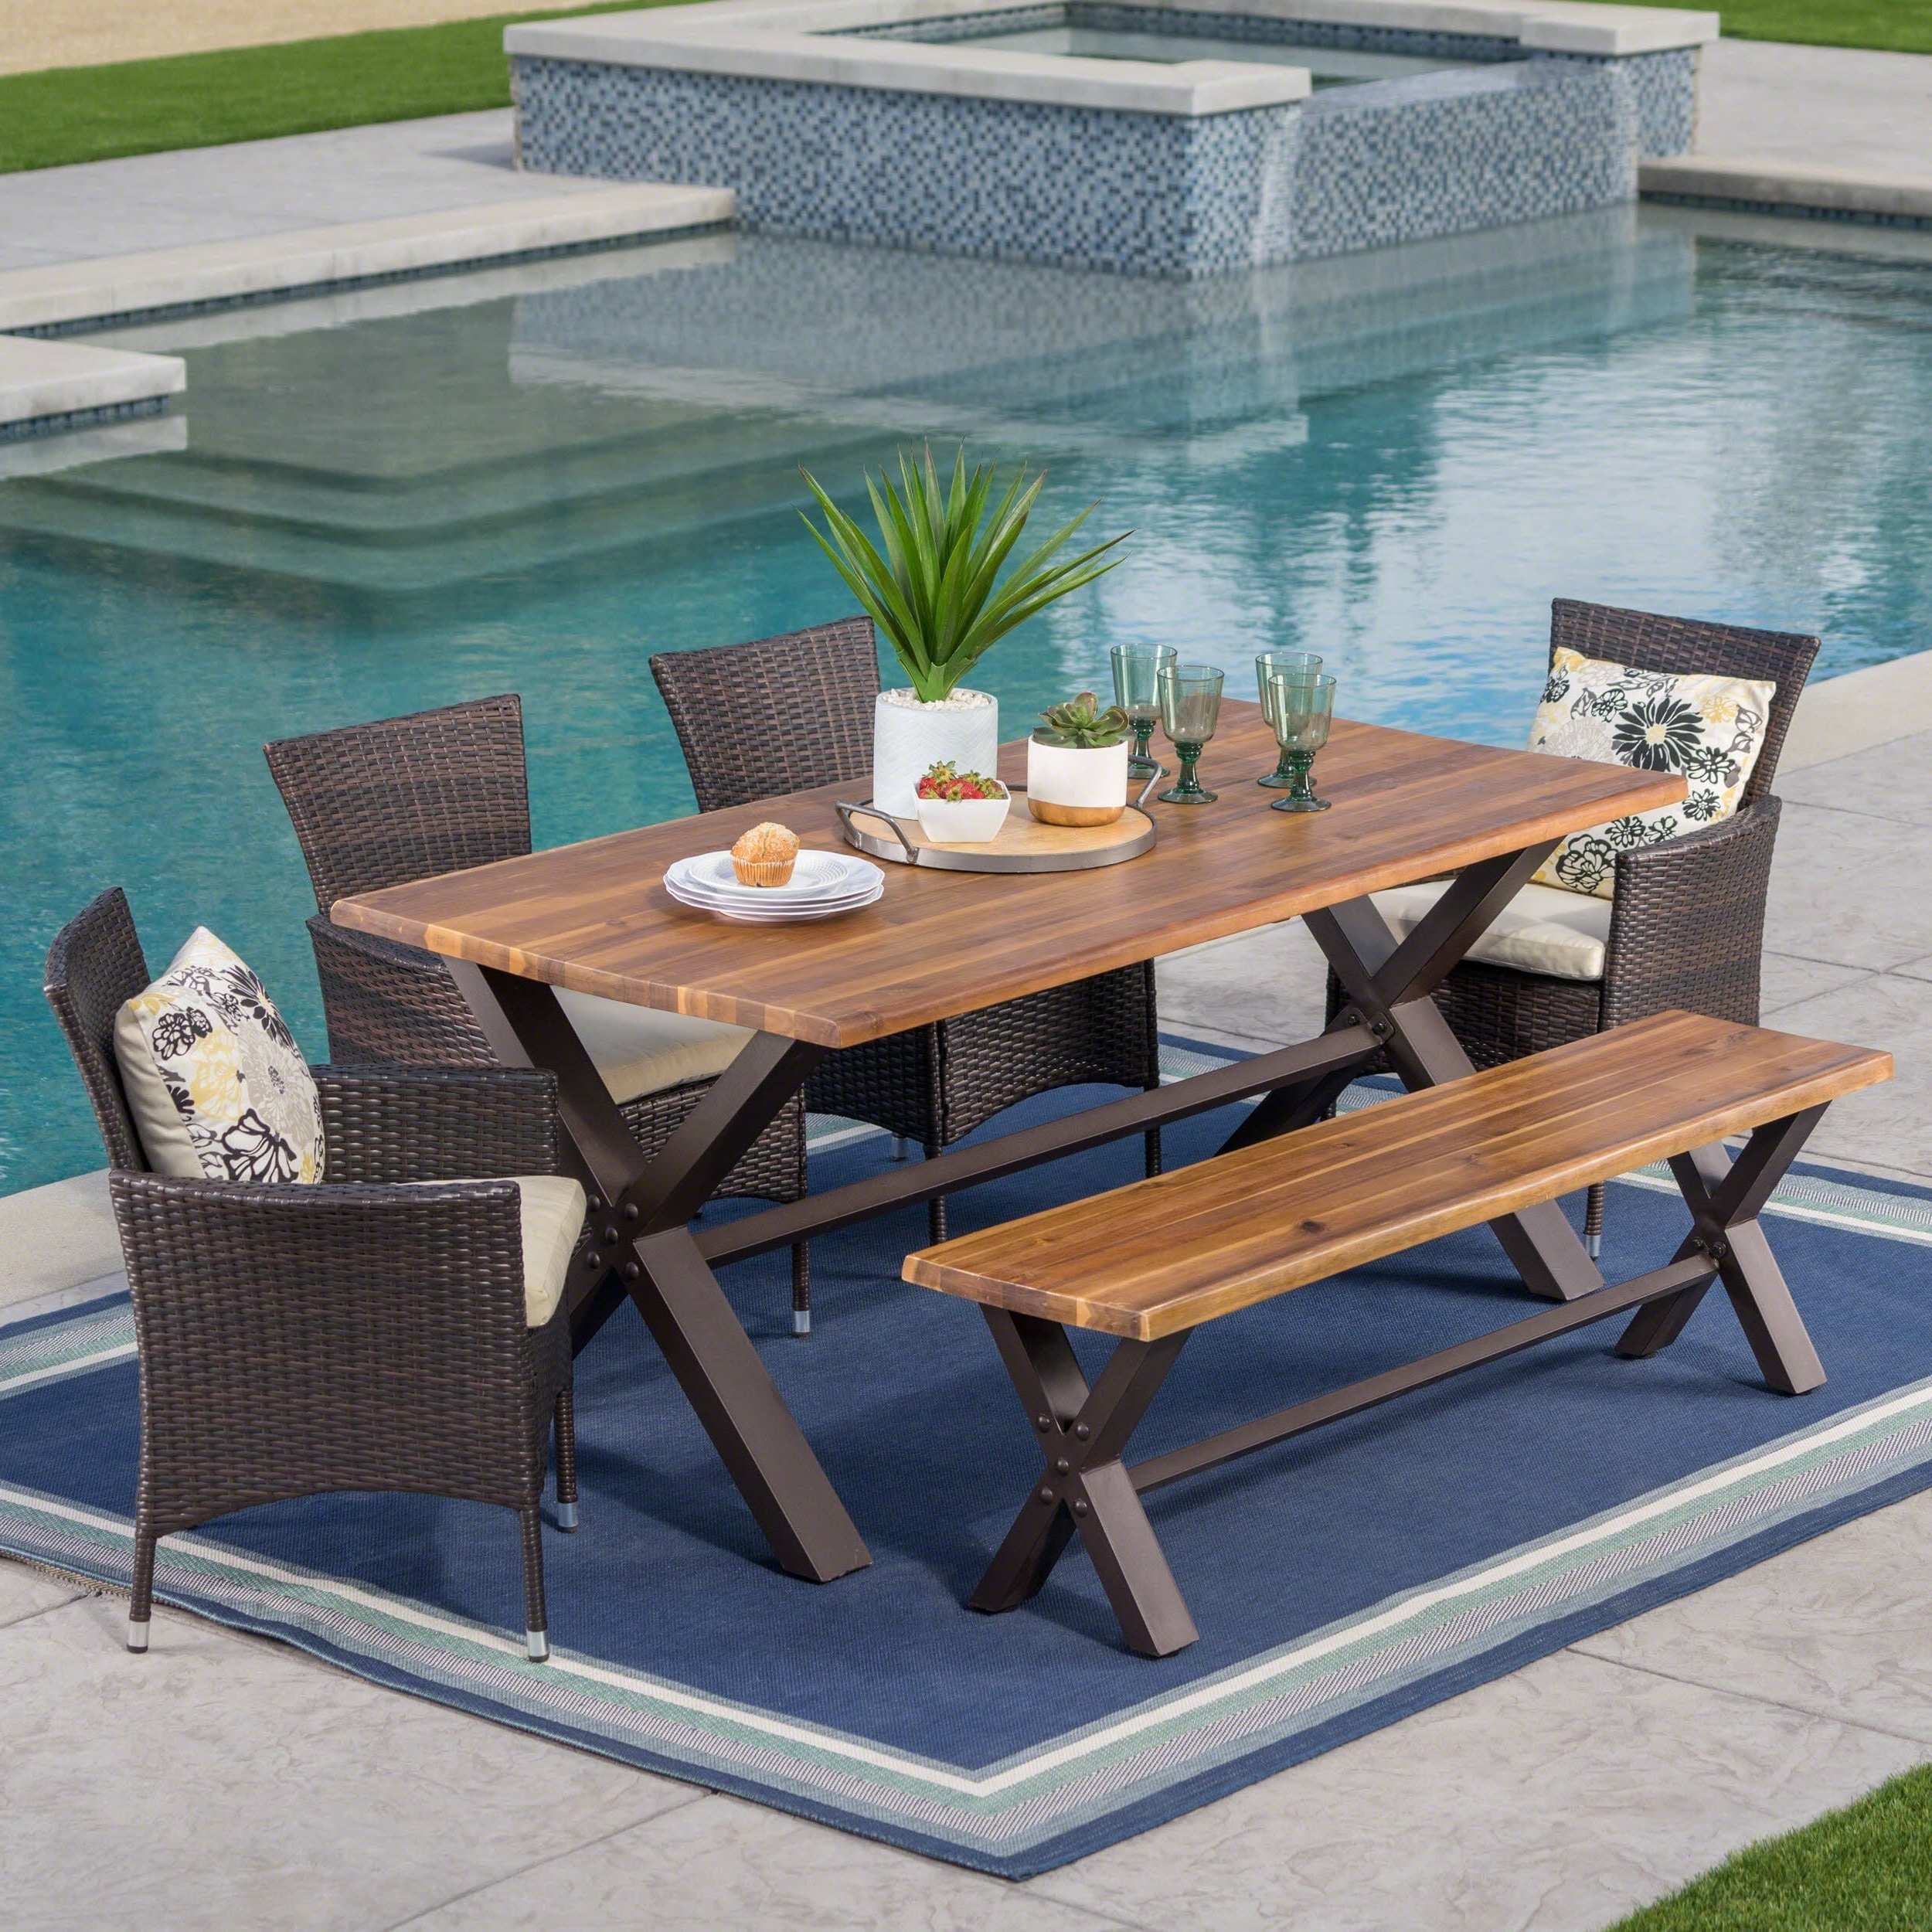 Our Best Patio Throughout Well Known Patio Conversation Sets With Dining Table (View 16 of 20)